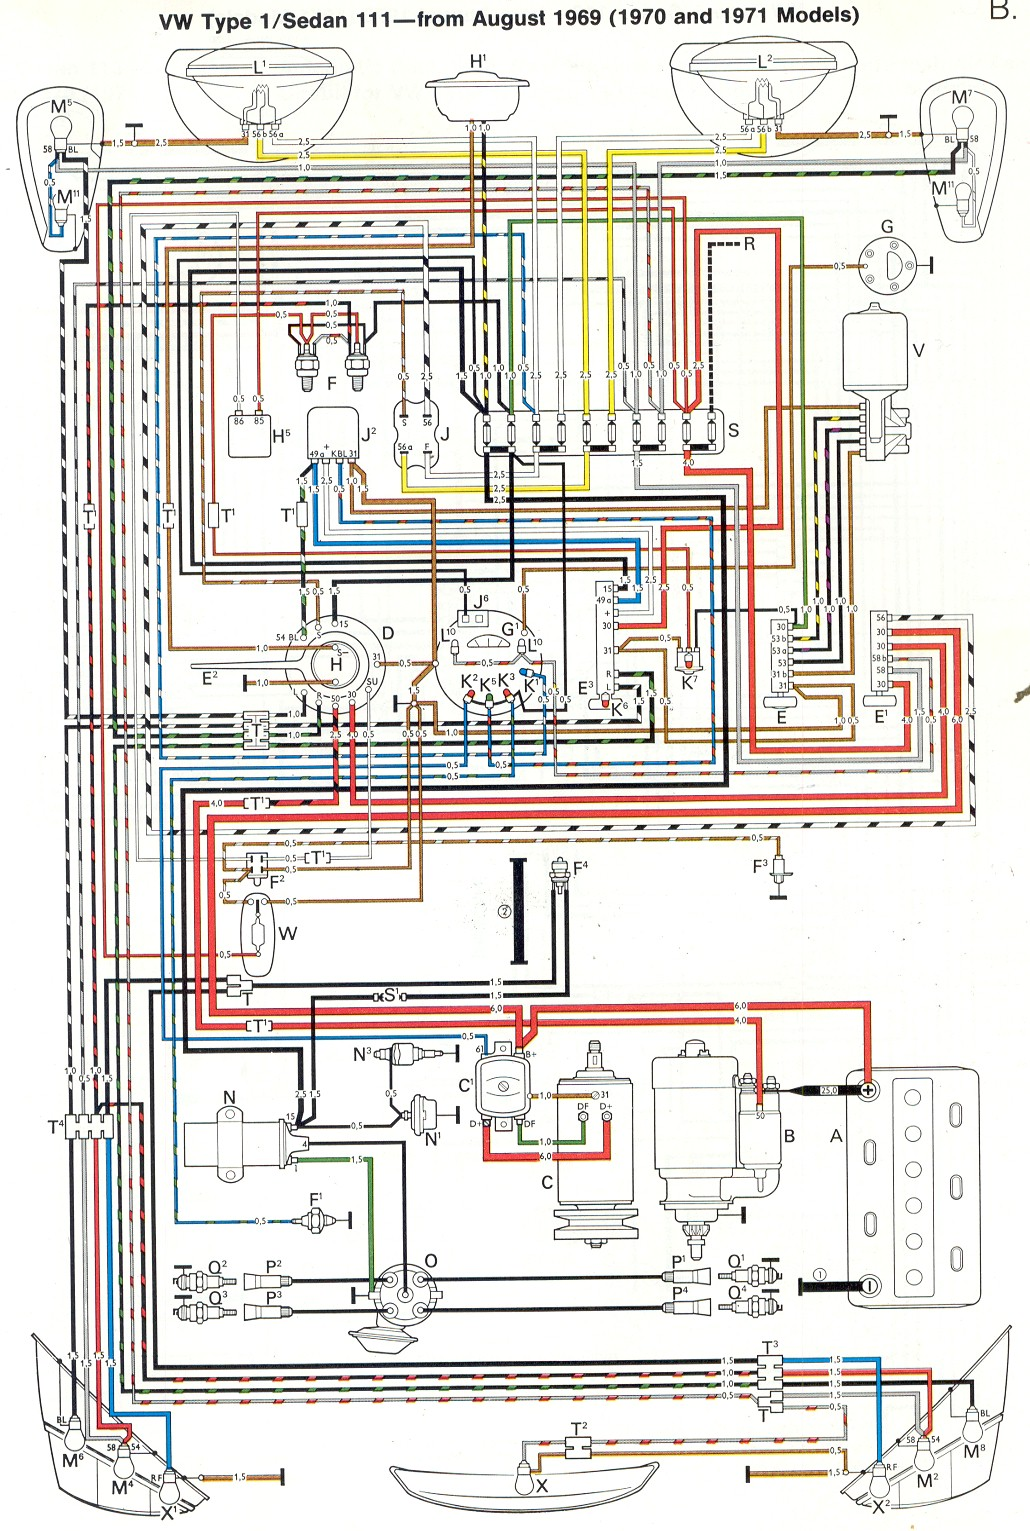 thesamba com type 1 wiring diagrams 74 vw bug wiring diagram